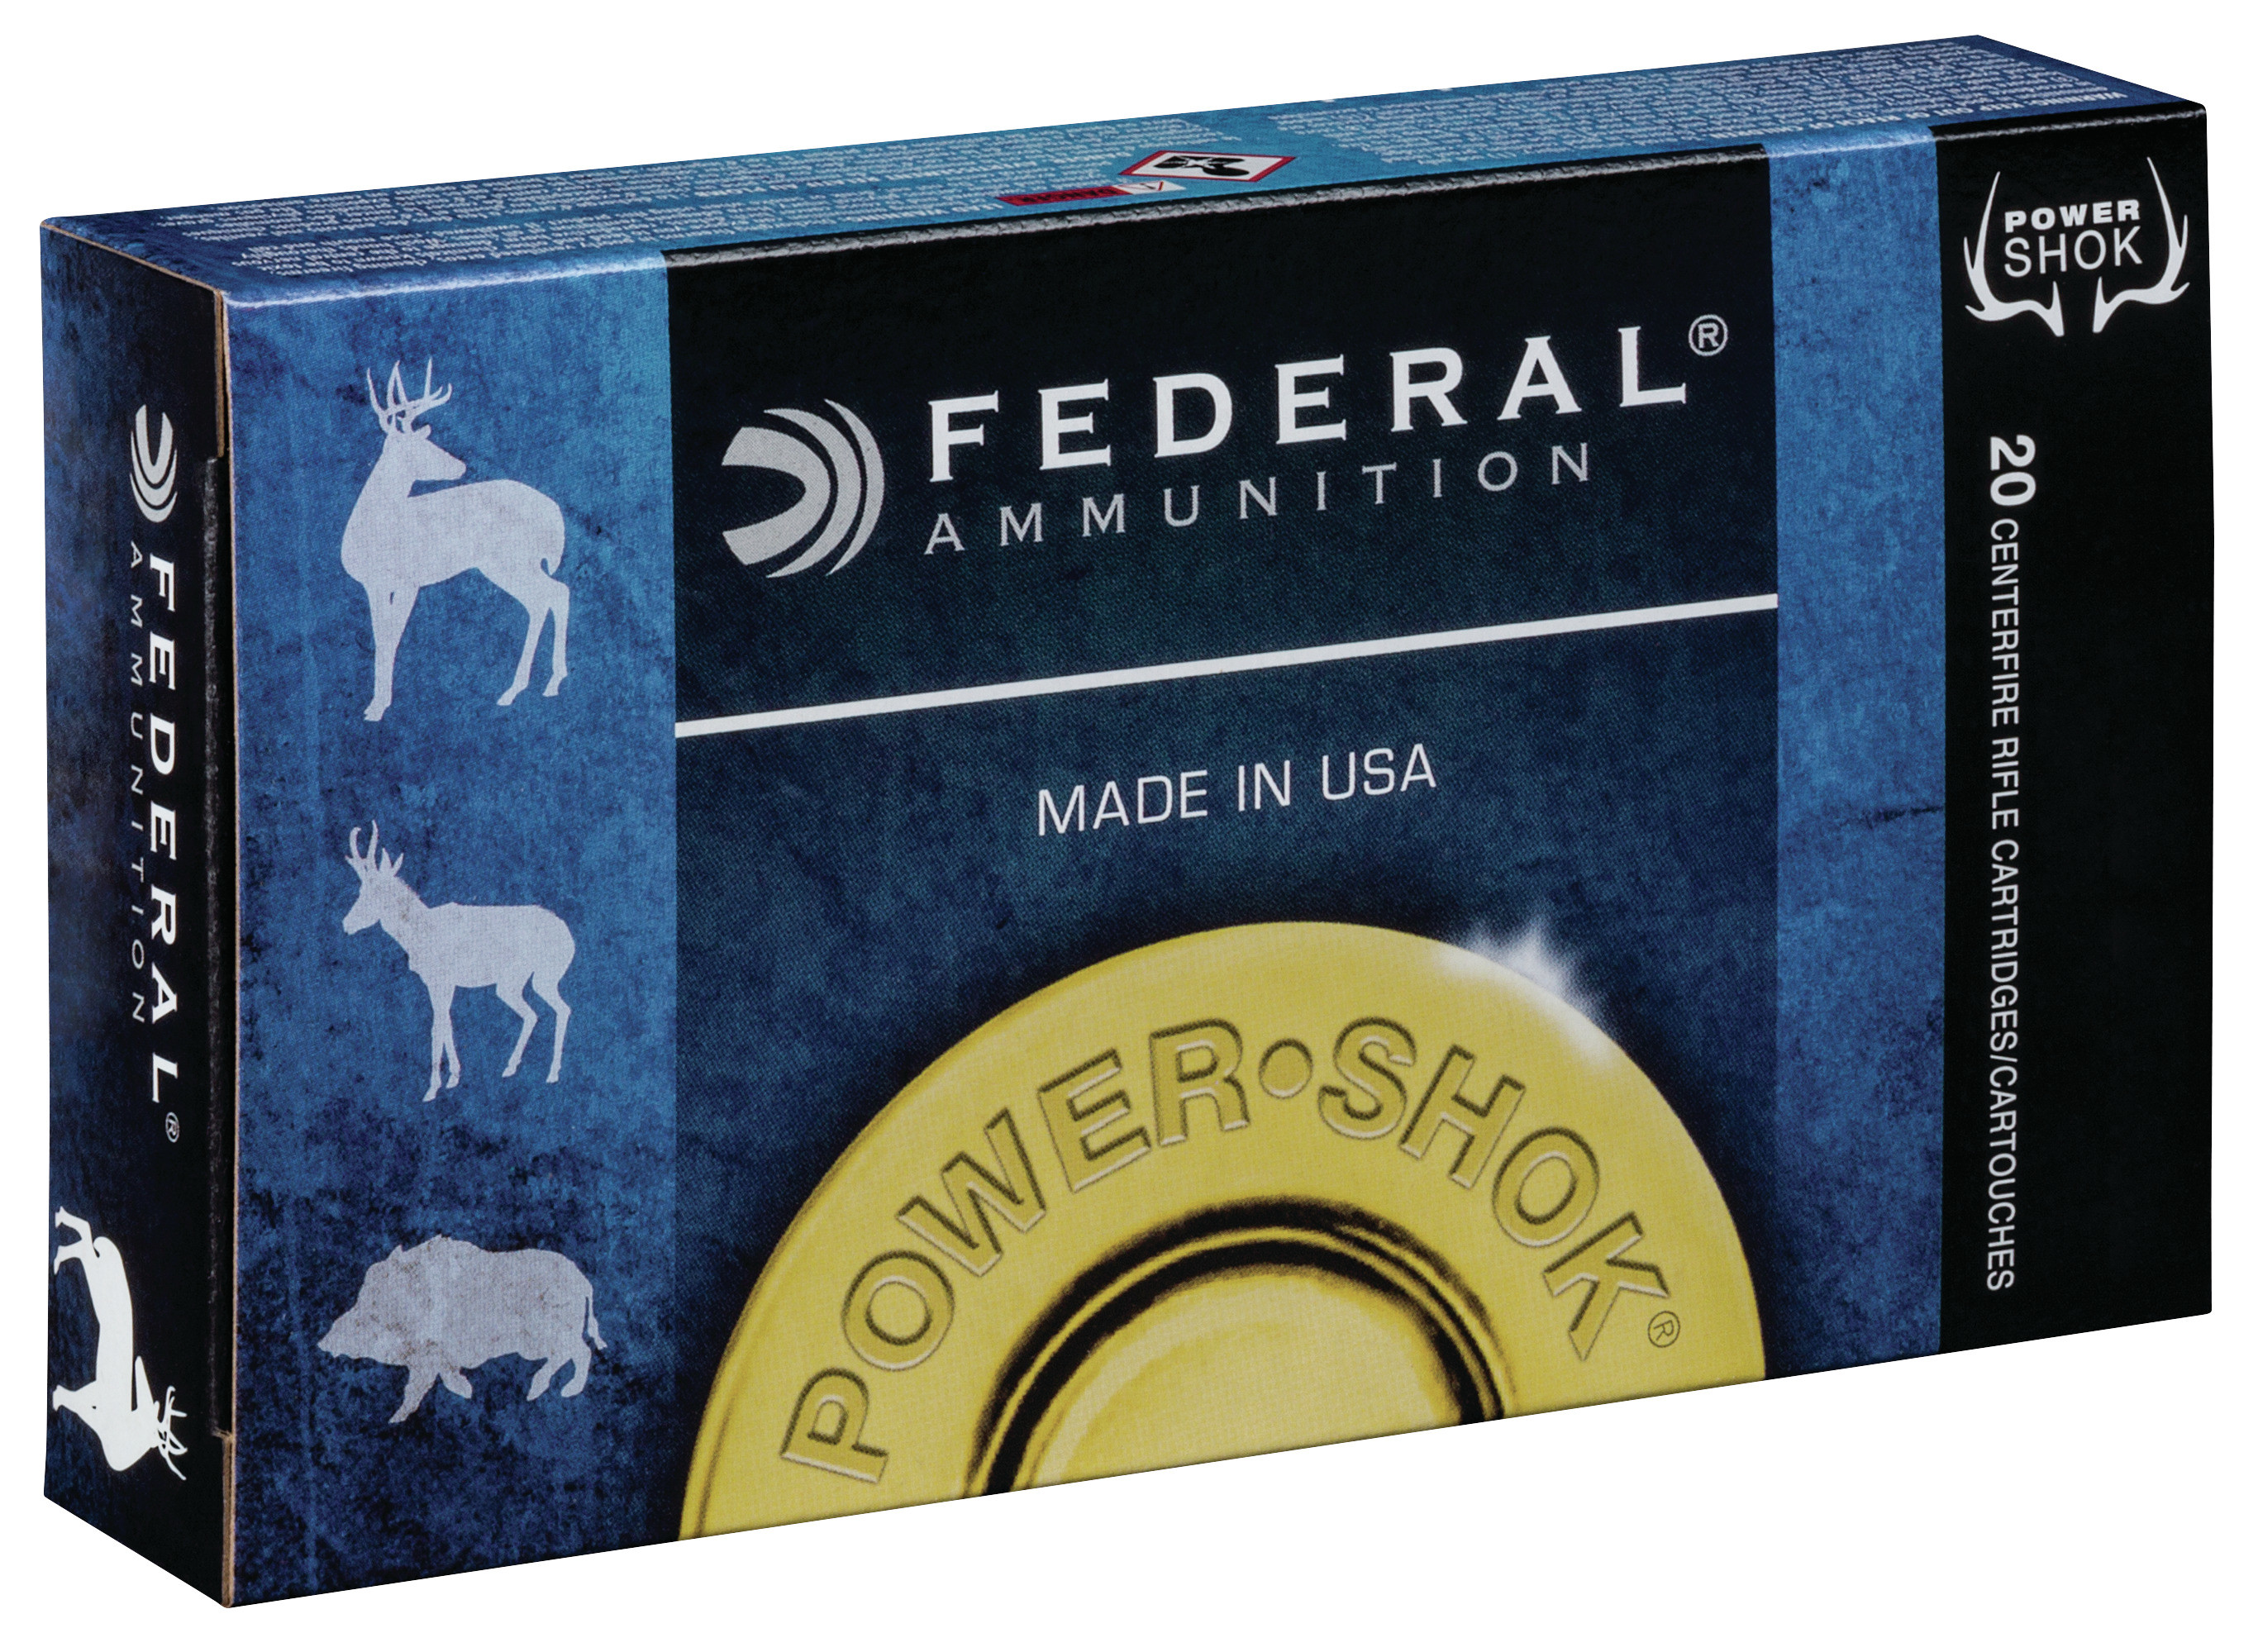 Federal Power-Shok Ammunition 375 H&H Magnum 270GR Jacketed Soft Point Per 20